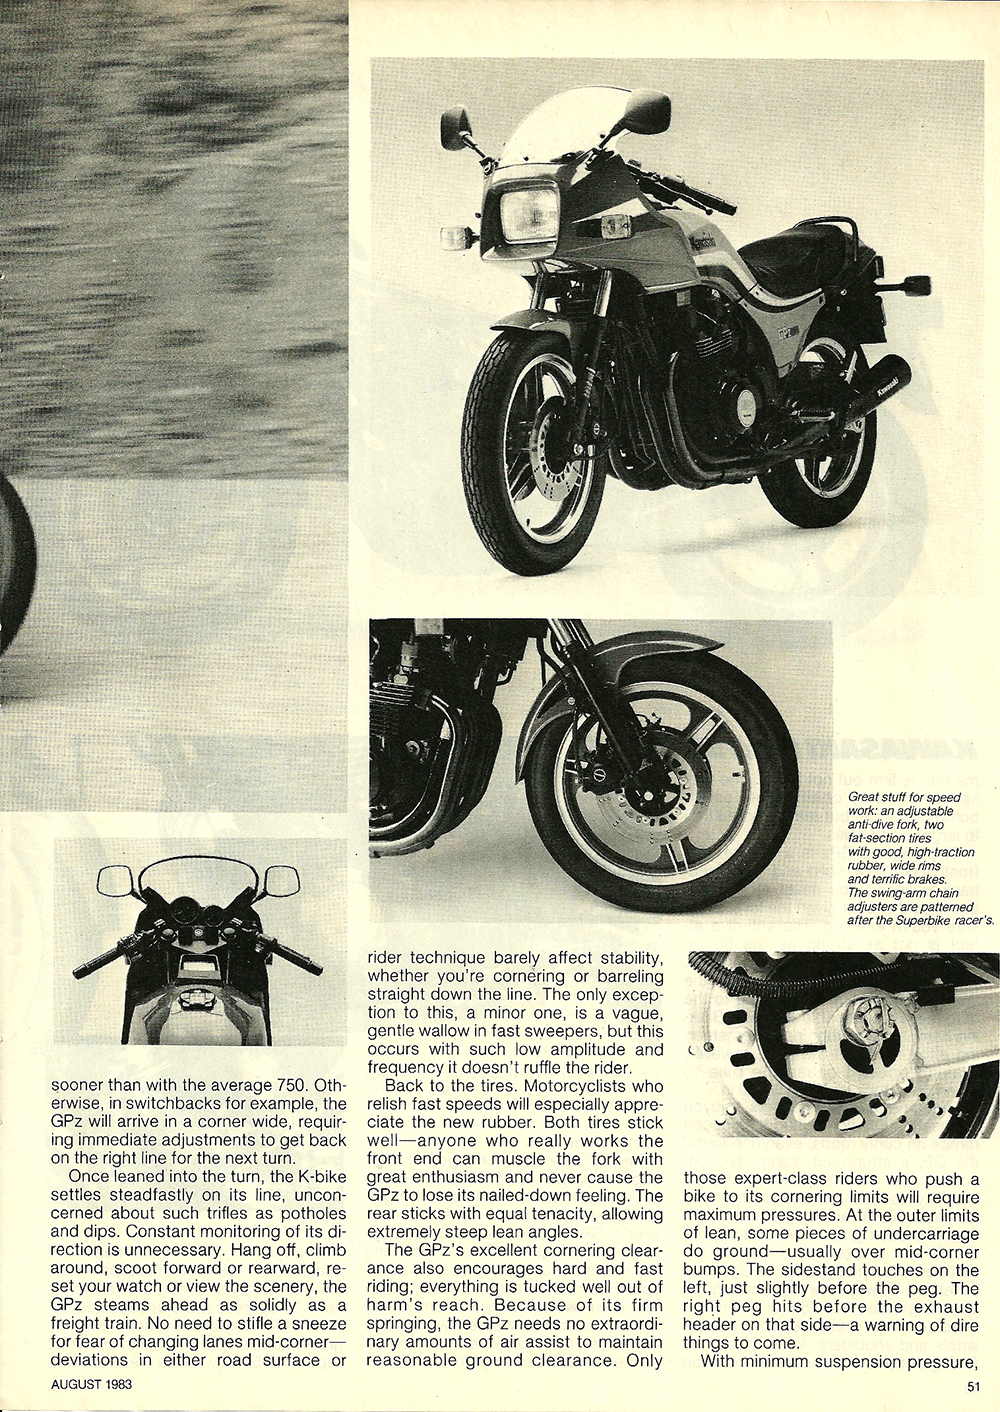 1983 Kawasaki GPz 750 road test 4.jpg